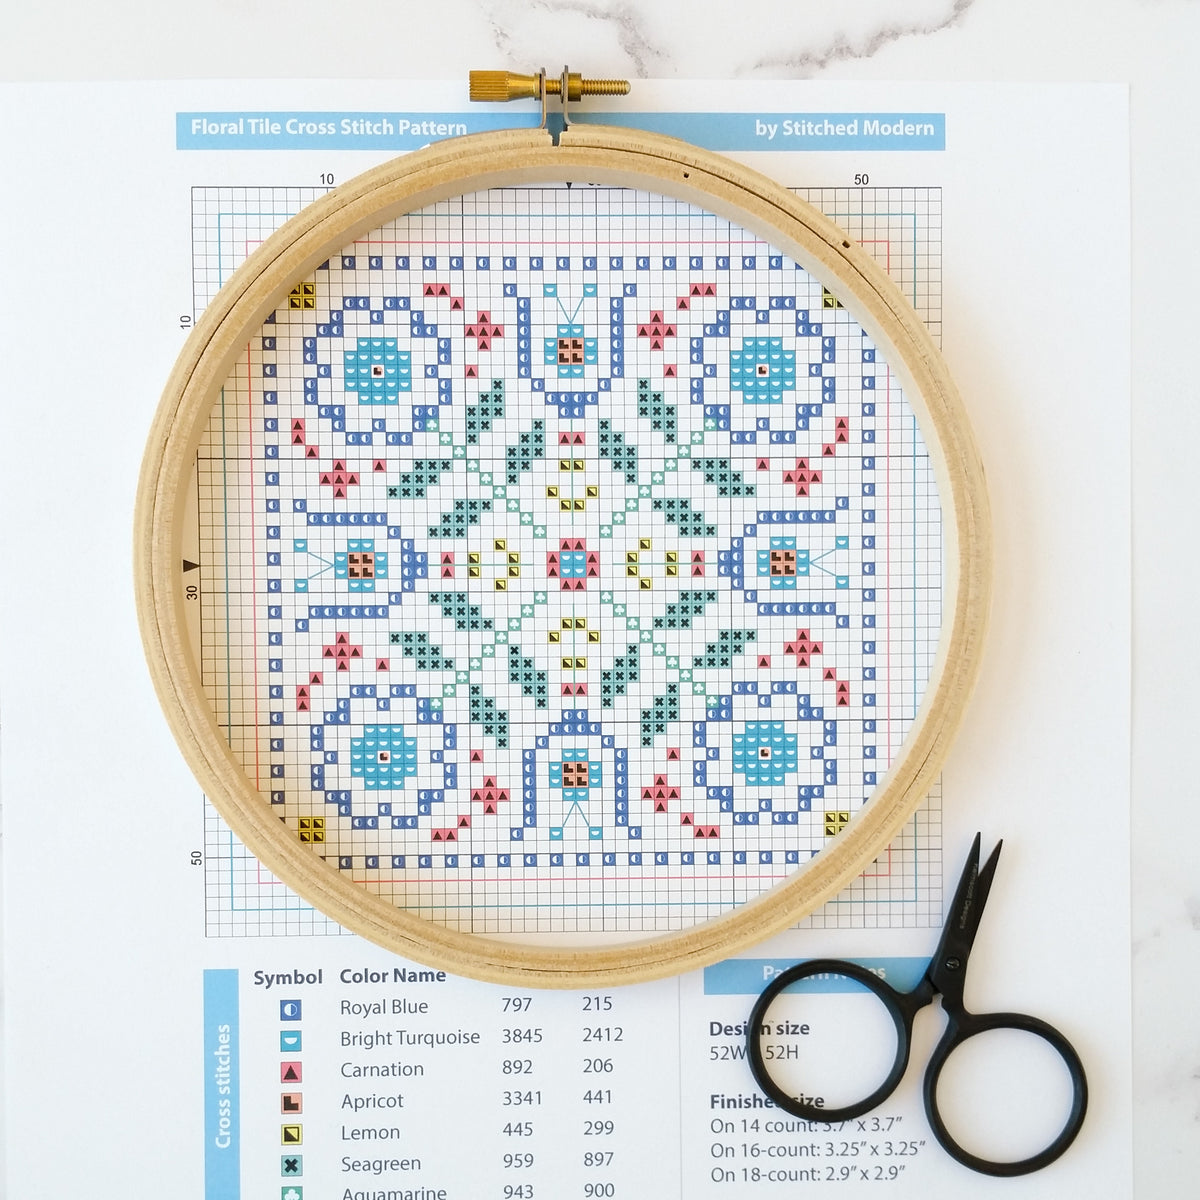 How to read a cross stitch pattern – Stitched Modern